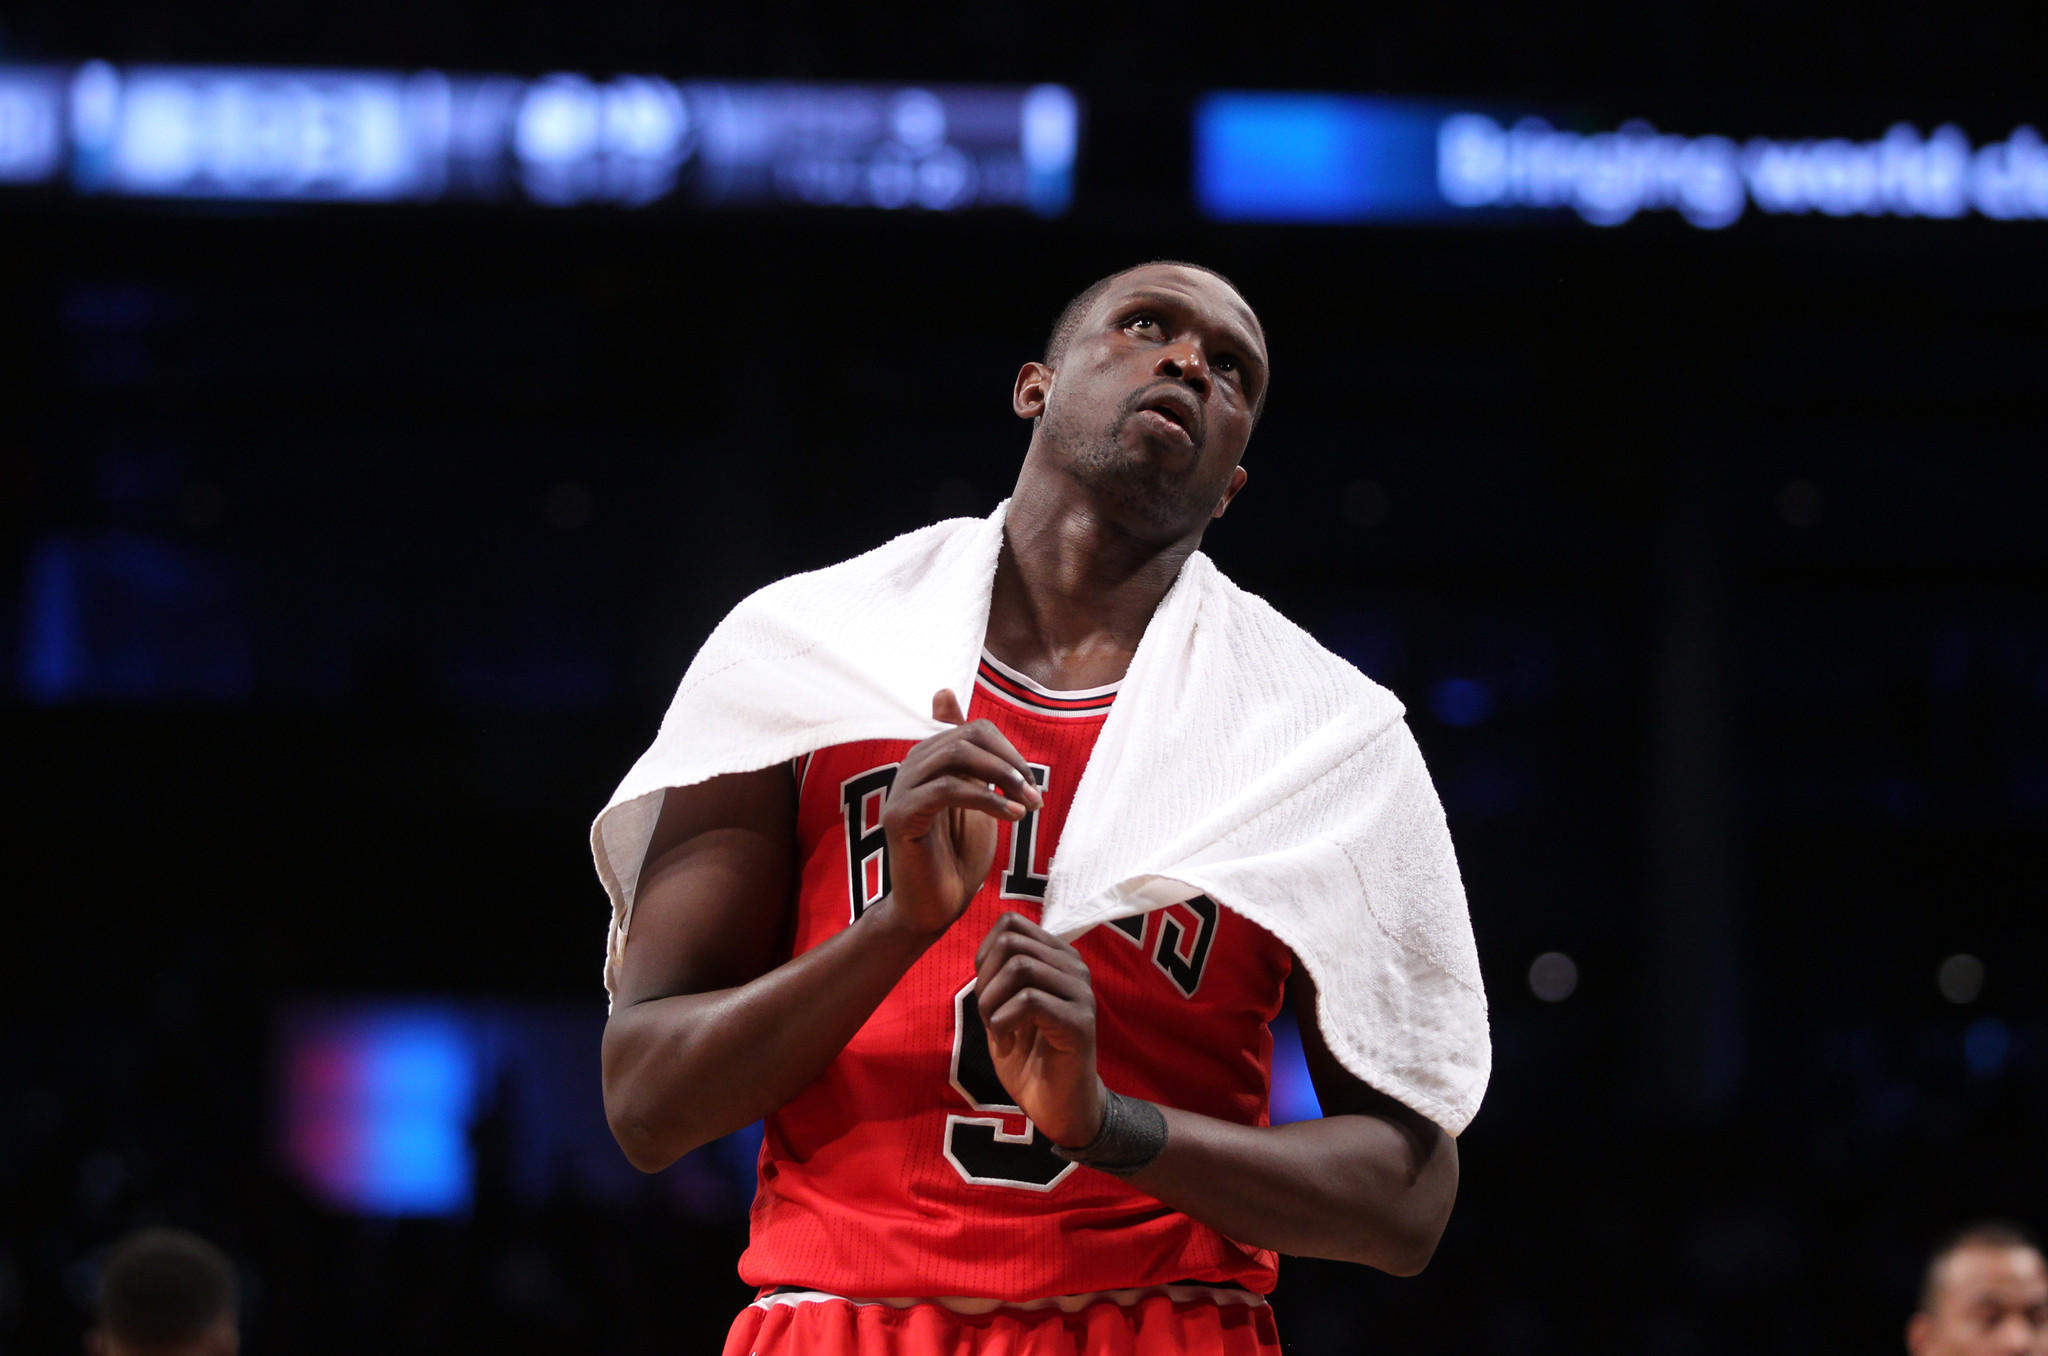 Trading Luol Deng in the wake of Derrick Rose's injury was the right move for the Bulls. So why does it feel so wrong?